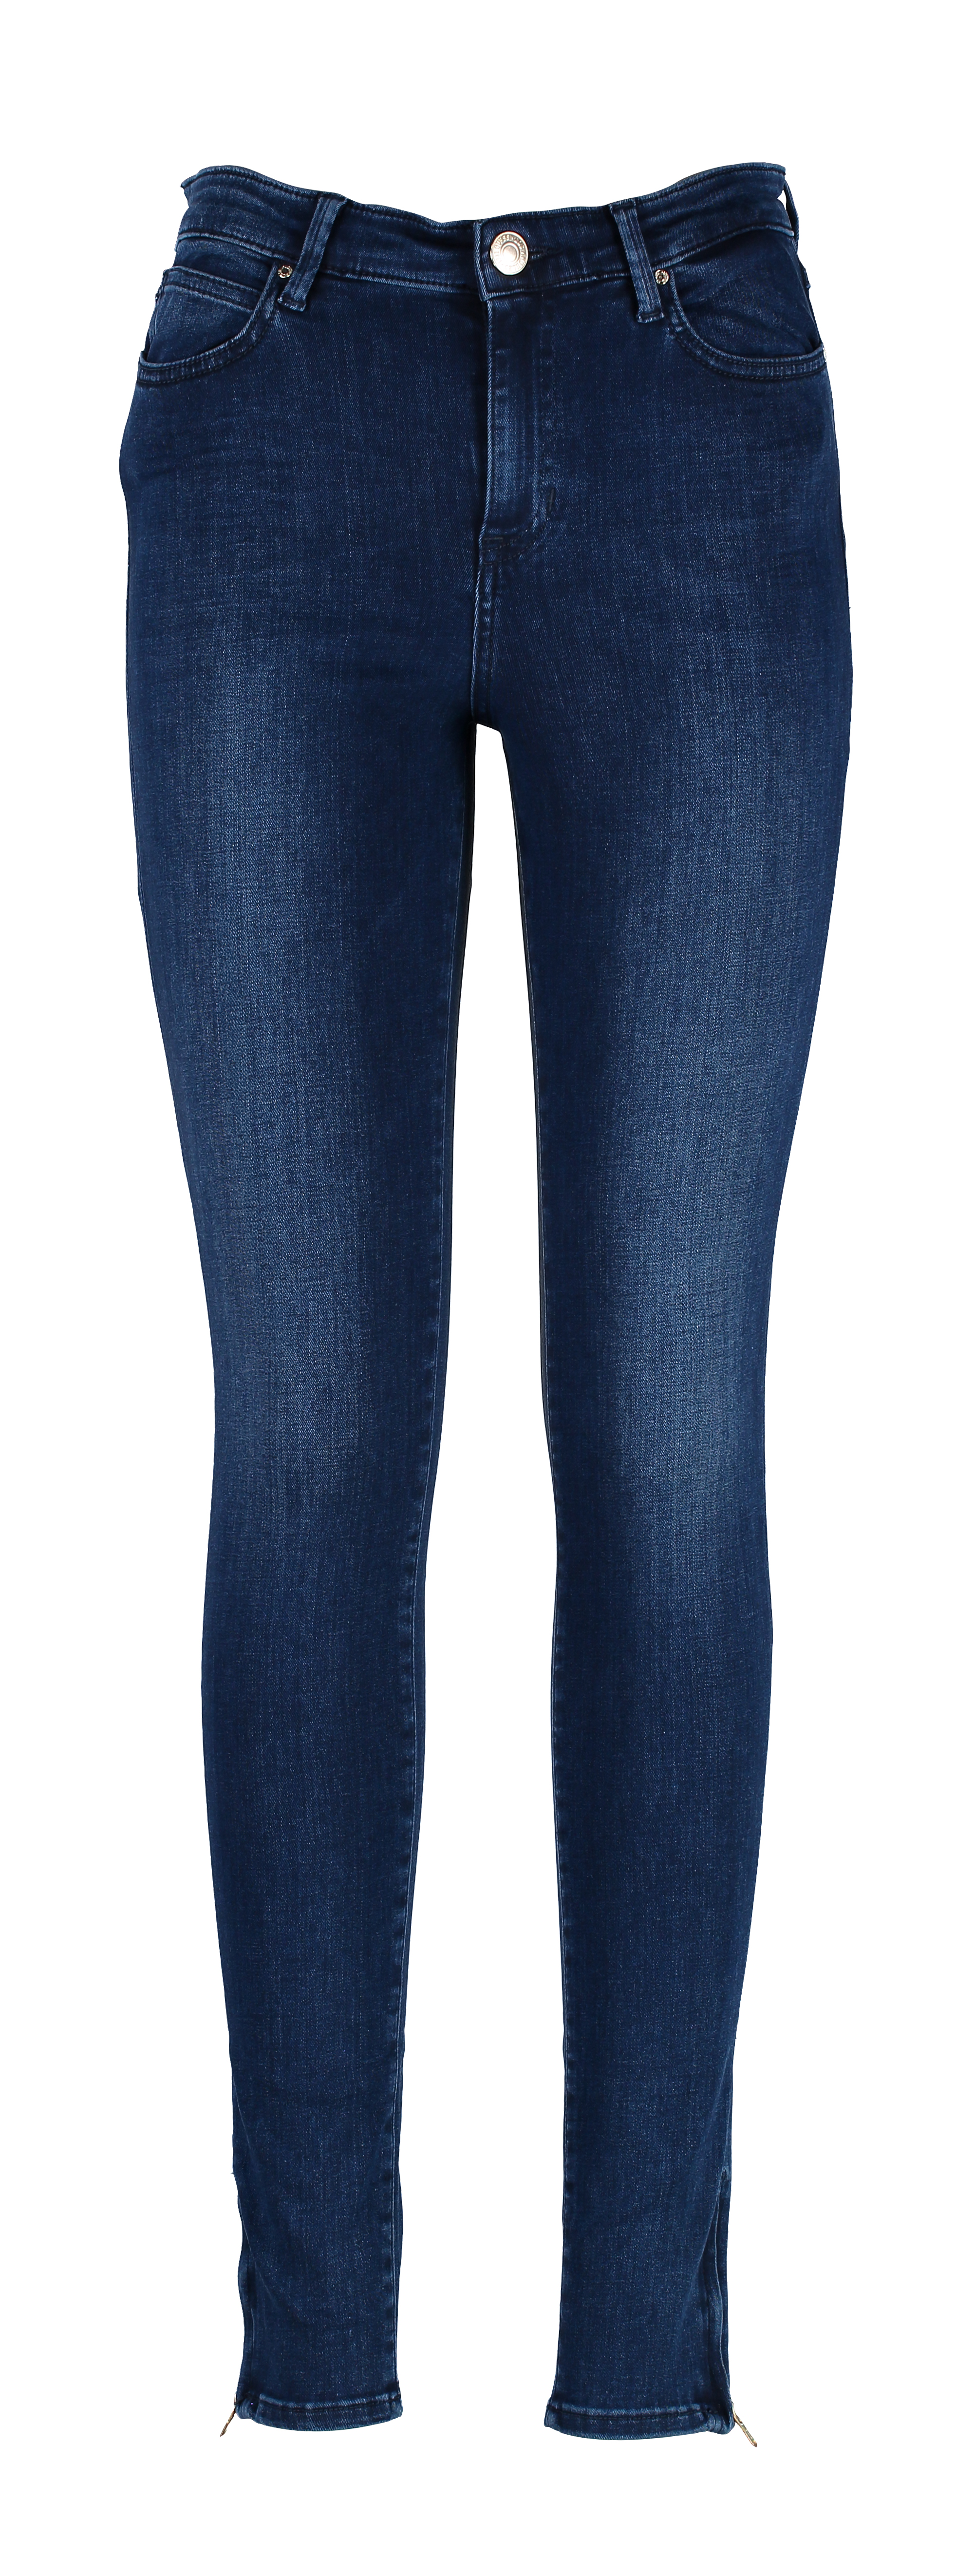 Guess dames jeans